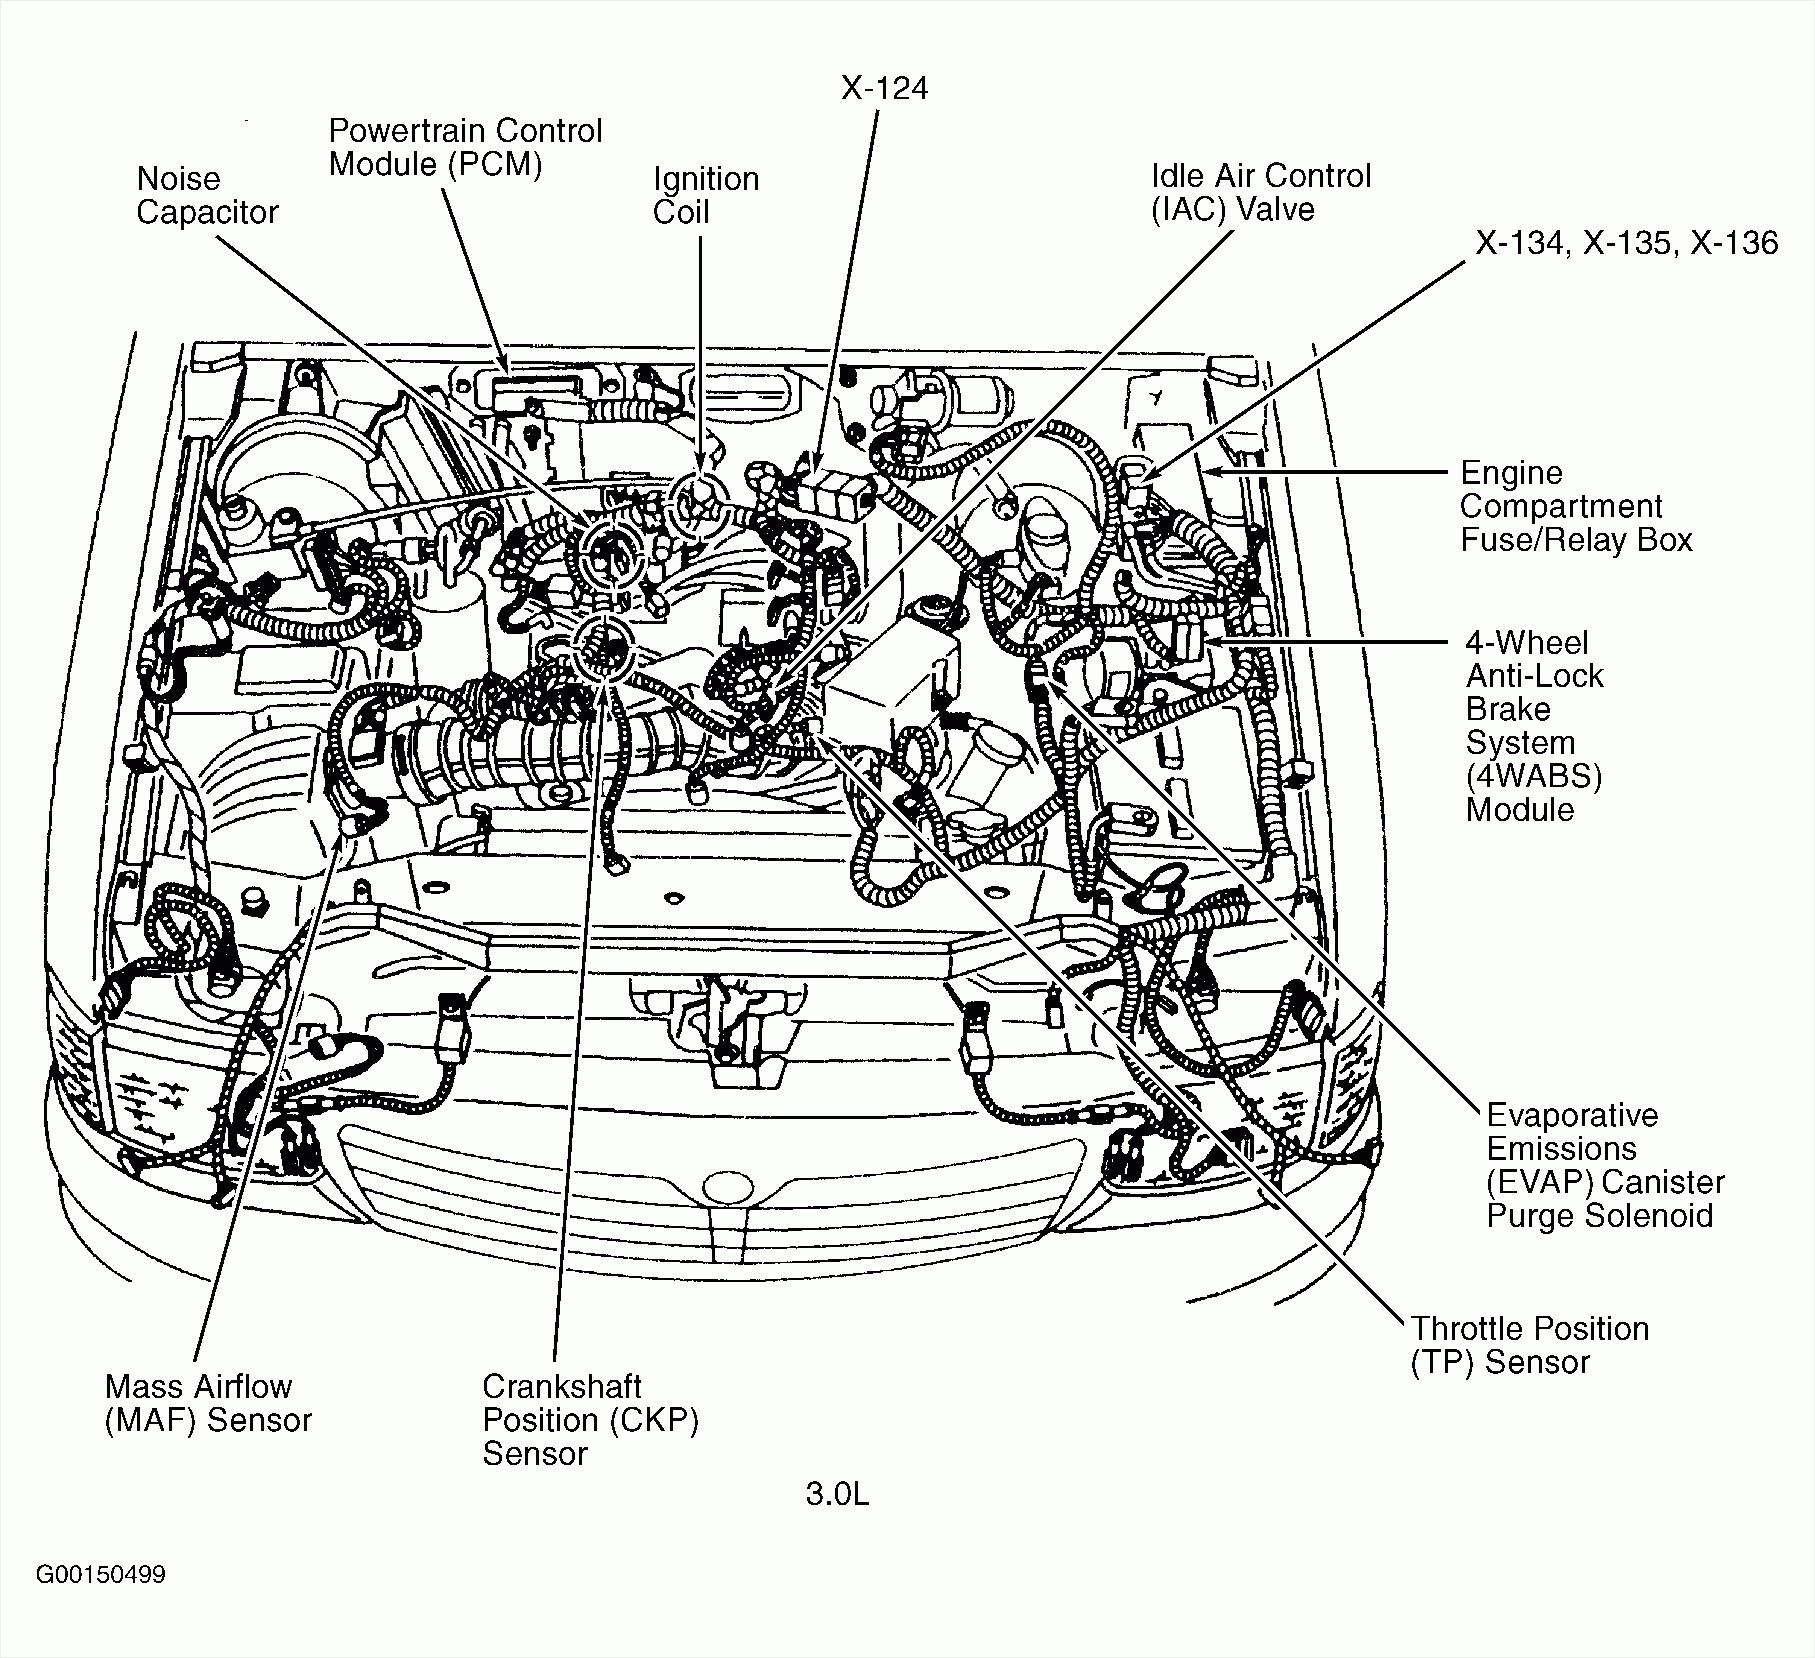 Mazda Millenia Engine Diagram Mazda Protege Engine Diagram Wiring Source E A Of Mazda Millenia Engine Diagram on 2001 vw passat fuse box diagram